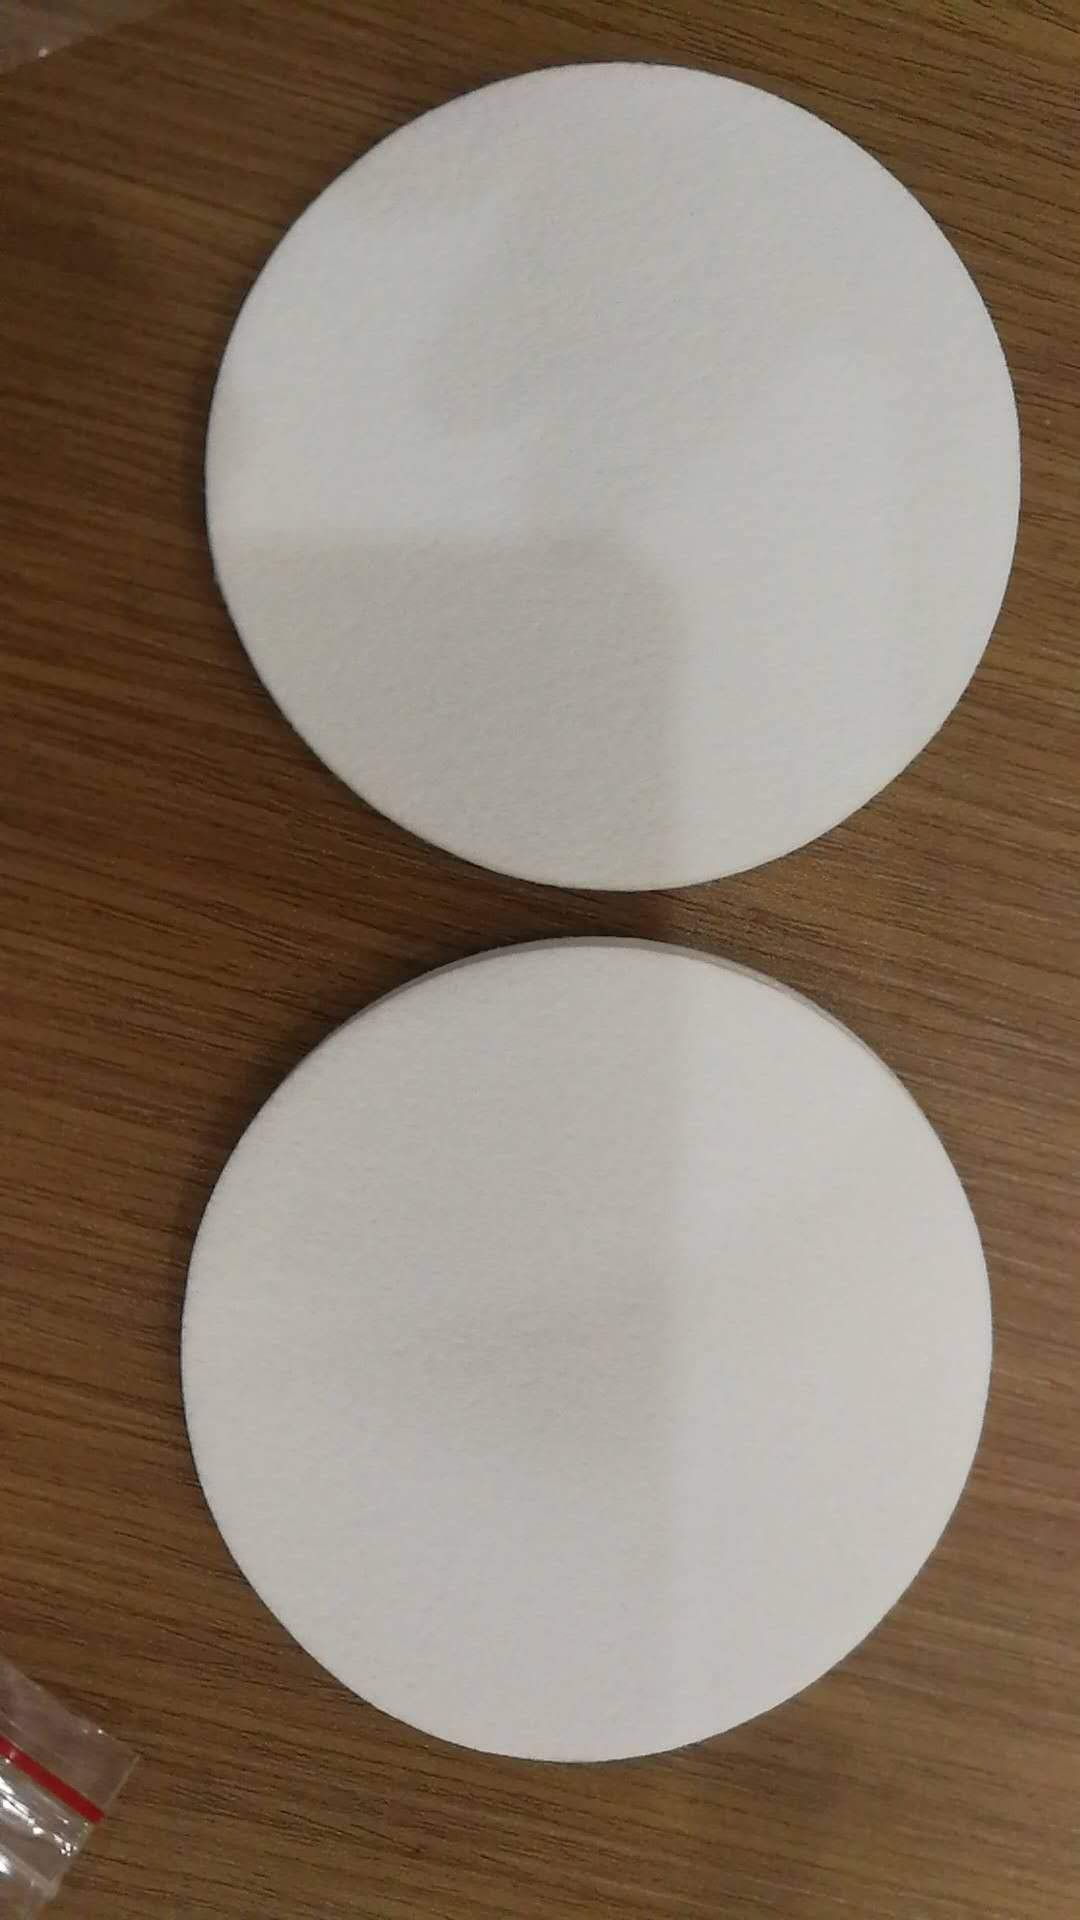 50 Synthetic Filter Discs 90mm''Wide Mouth'' Size Used for Mushroom Cultivation (50)